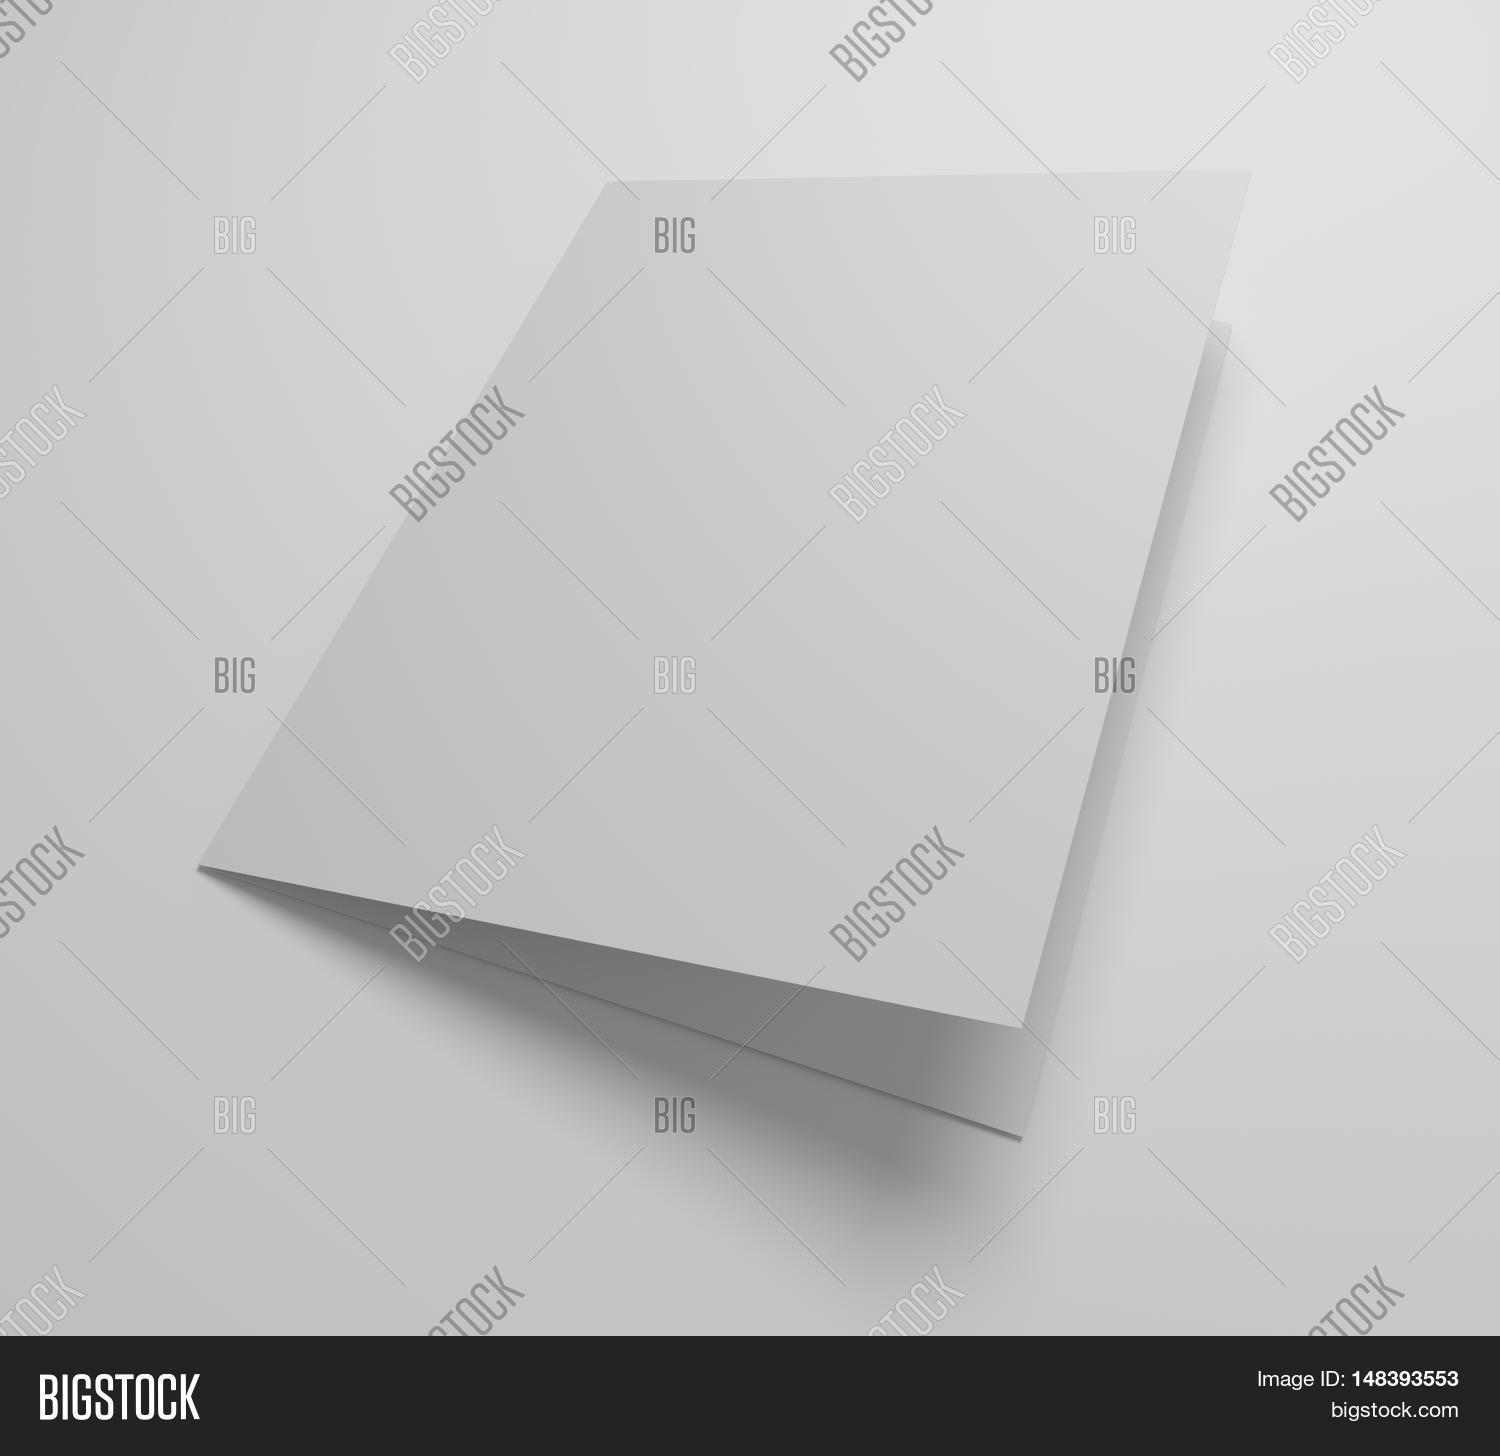 Blank Greeting Card Image Photo Free Trial Bigstock